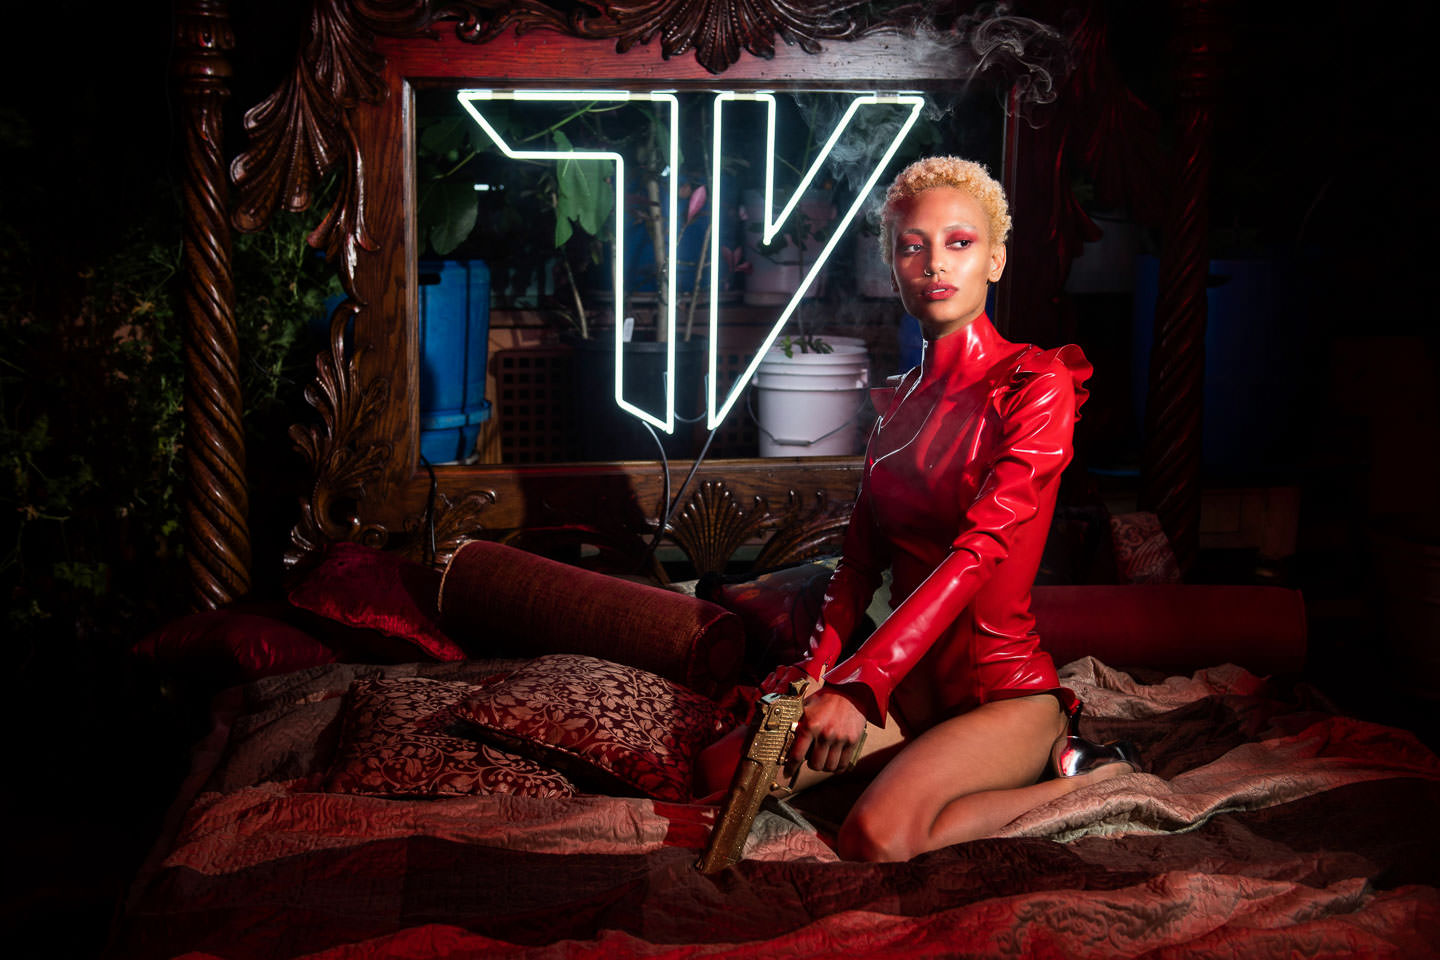 short haired female model wearing red latex suit and holding a golden gun sits on bed after smoking